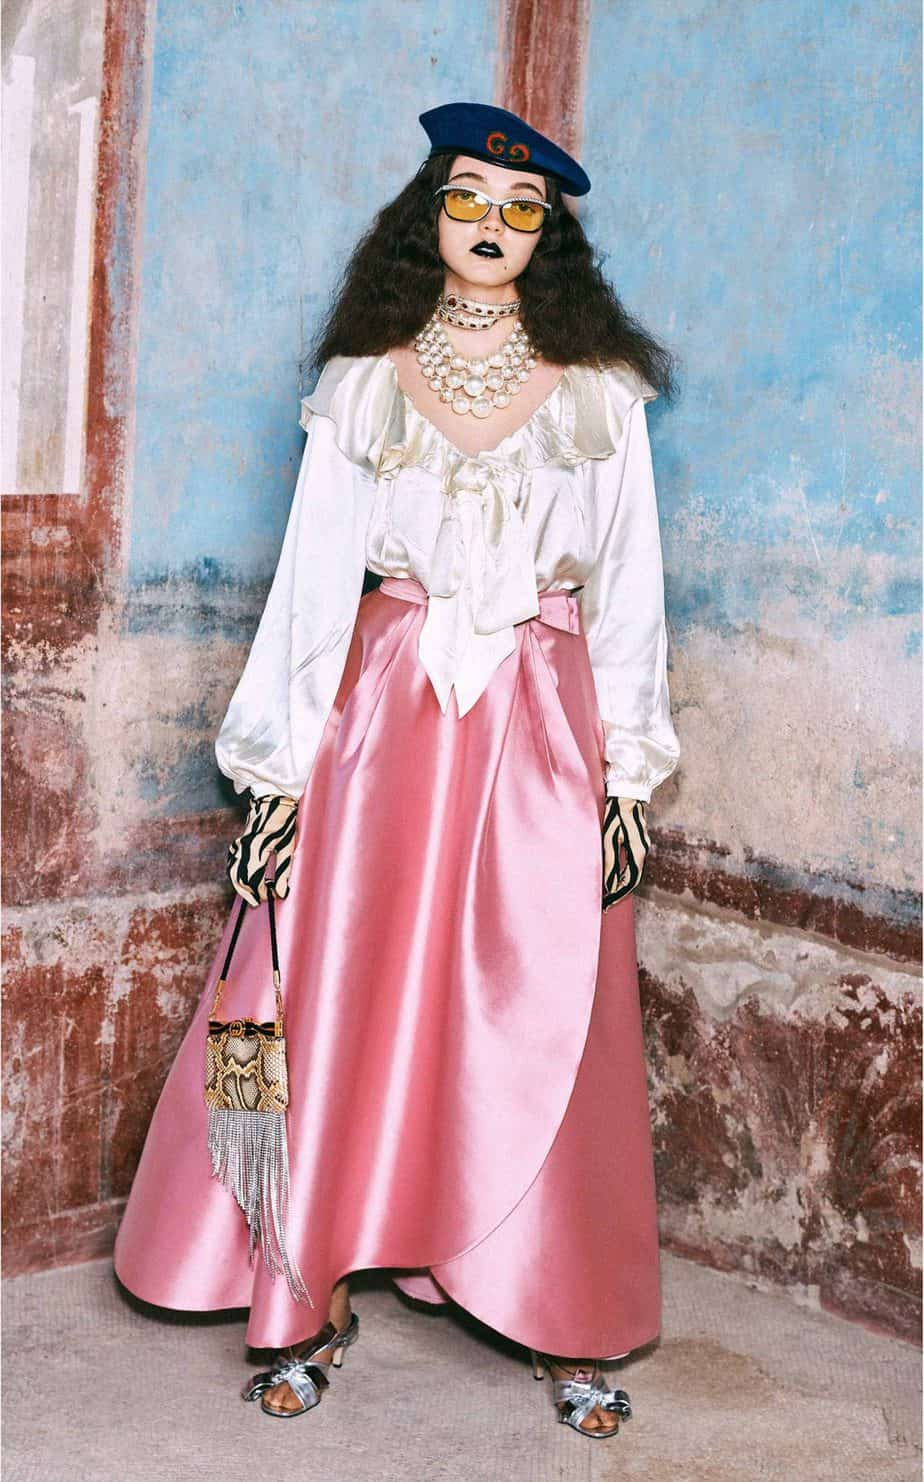 GUCCI, FALL 2019. WOMEN'S FASHION, Photographer Harmony Korine, Art Director, Christopher Simmonds - 104